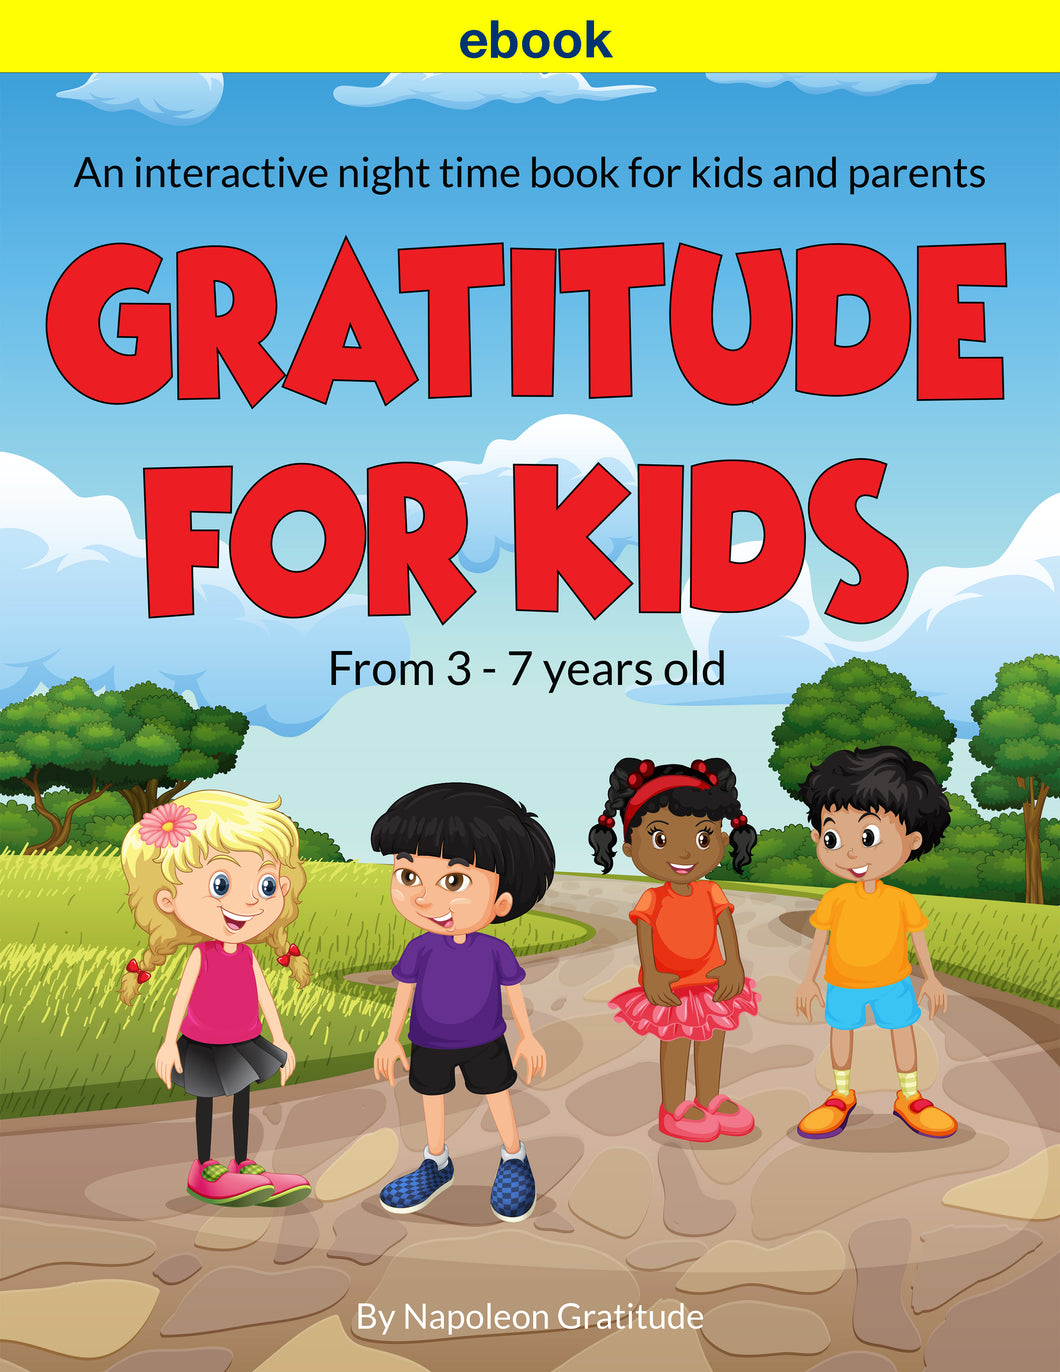 Pre-Order the digital version of the 28-day interactive gratitude children's book